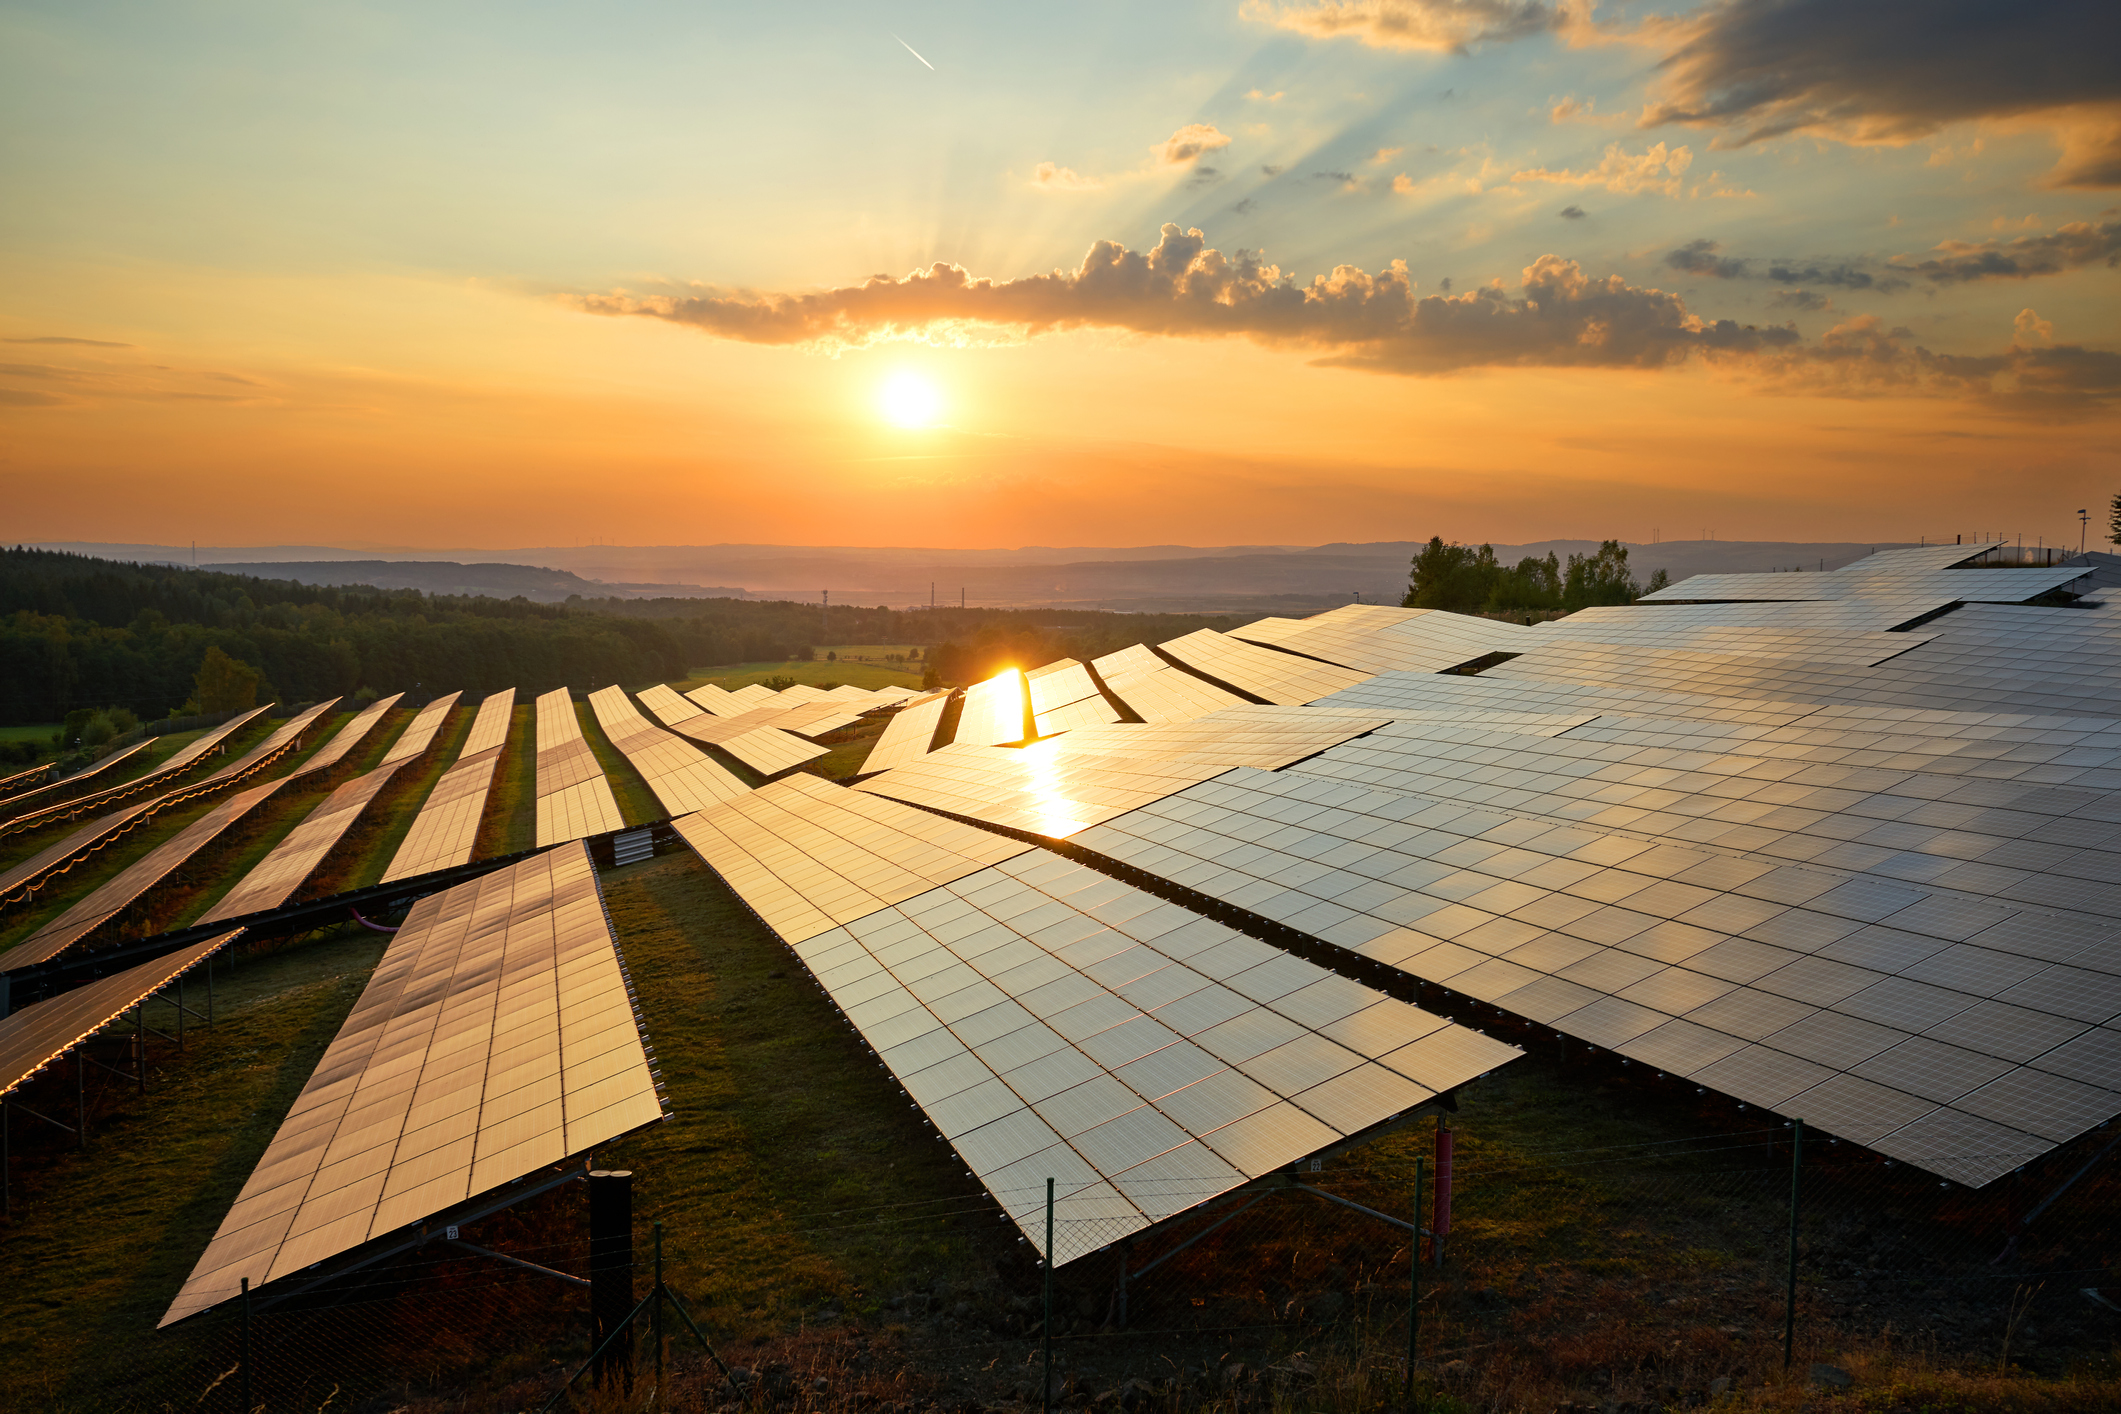 Solar Power - SKY began as a solar developer, and draws on extensive international and local experience to provide rooftop, ground mount or carport installations for commercial, industrial and institutional sites.